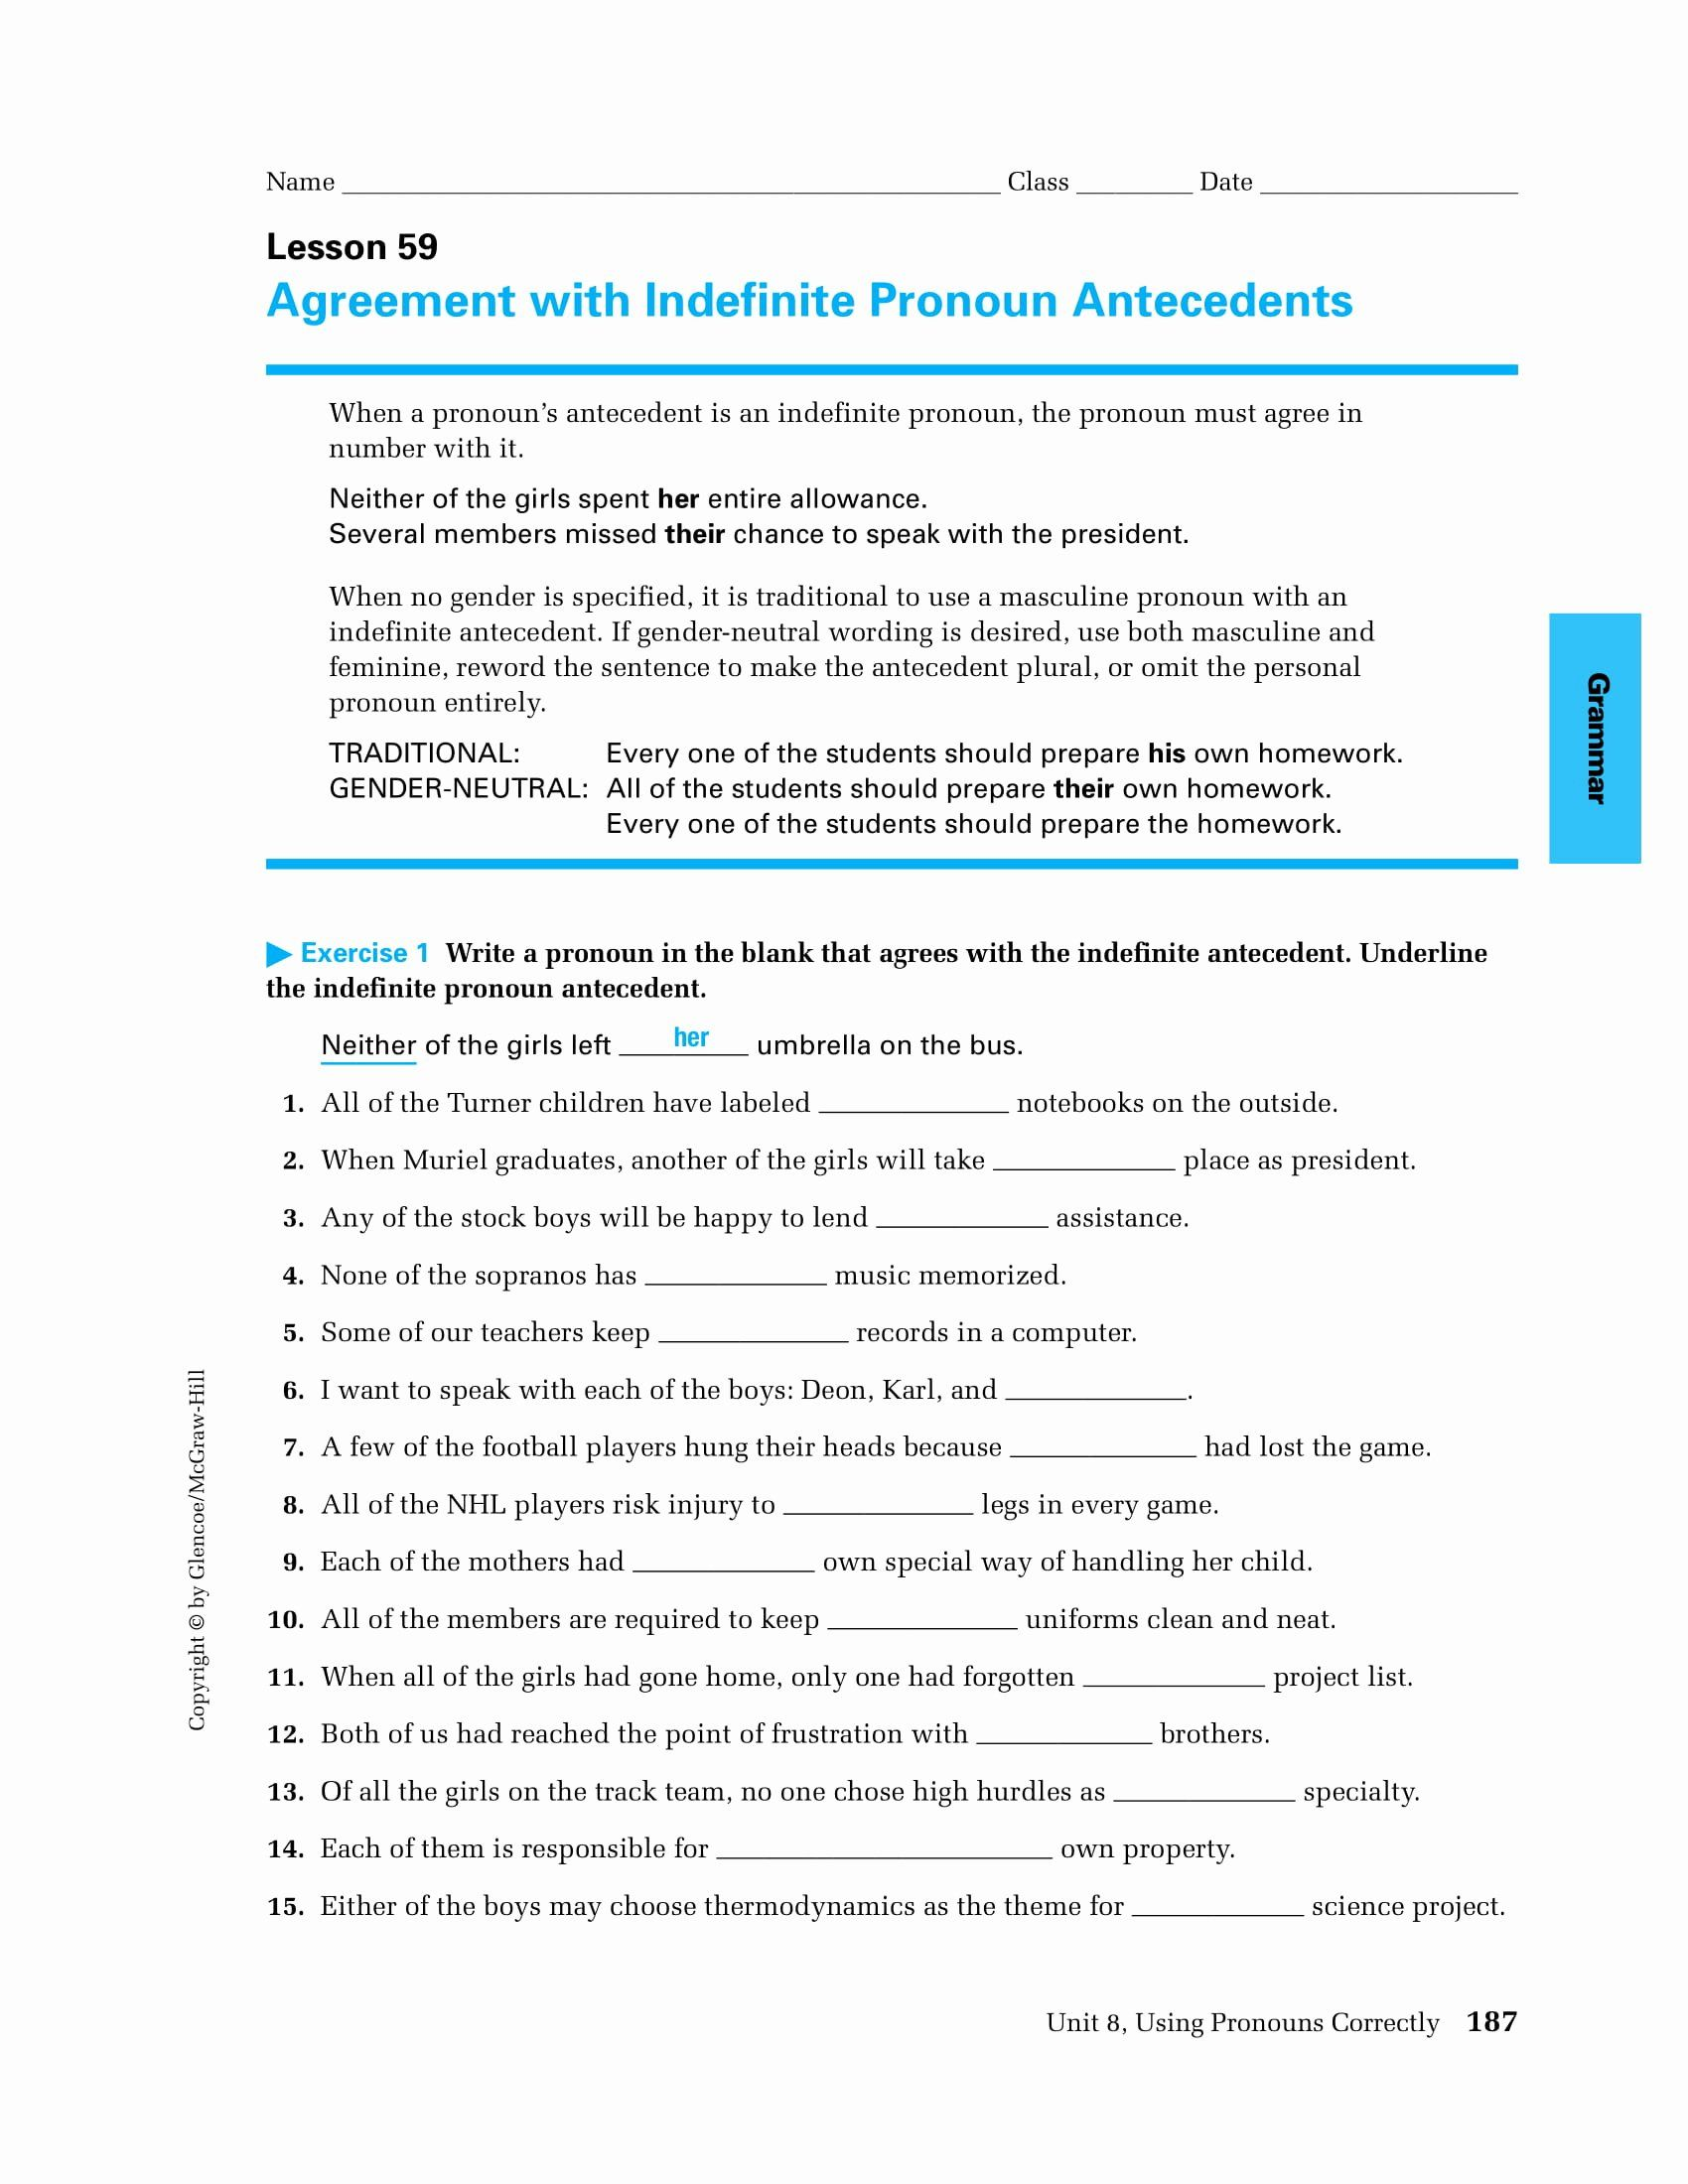 Pronoun Antecedent Agreement Worksheet Unique 9 Pronoun